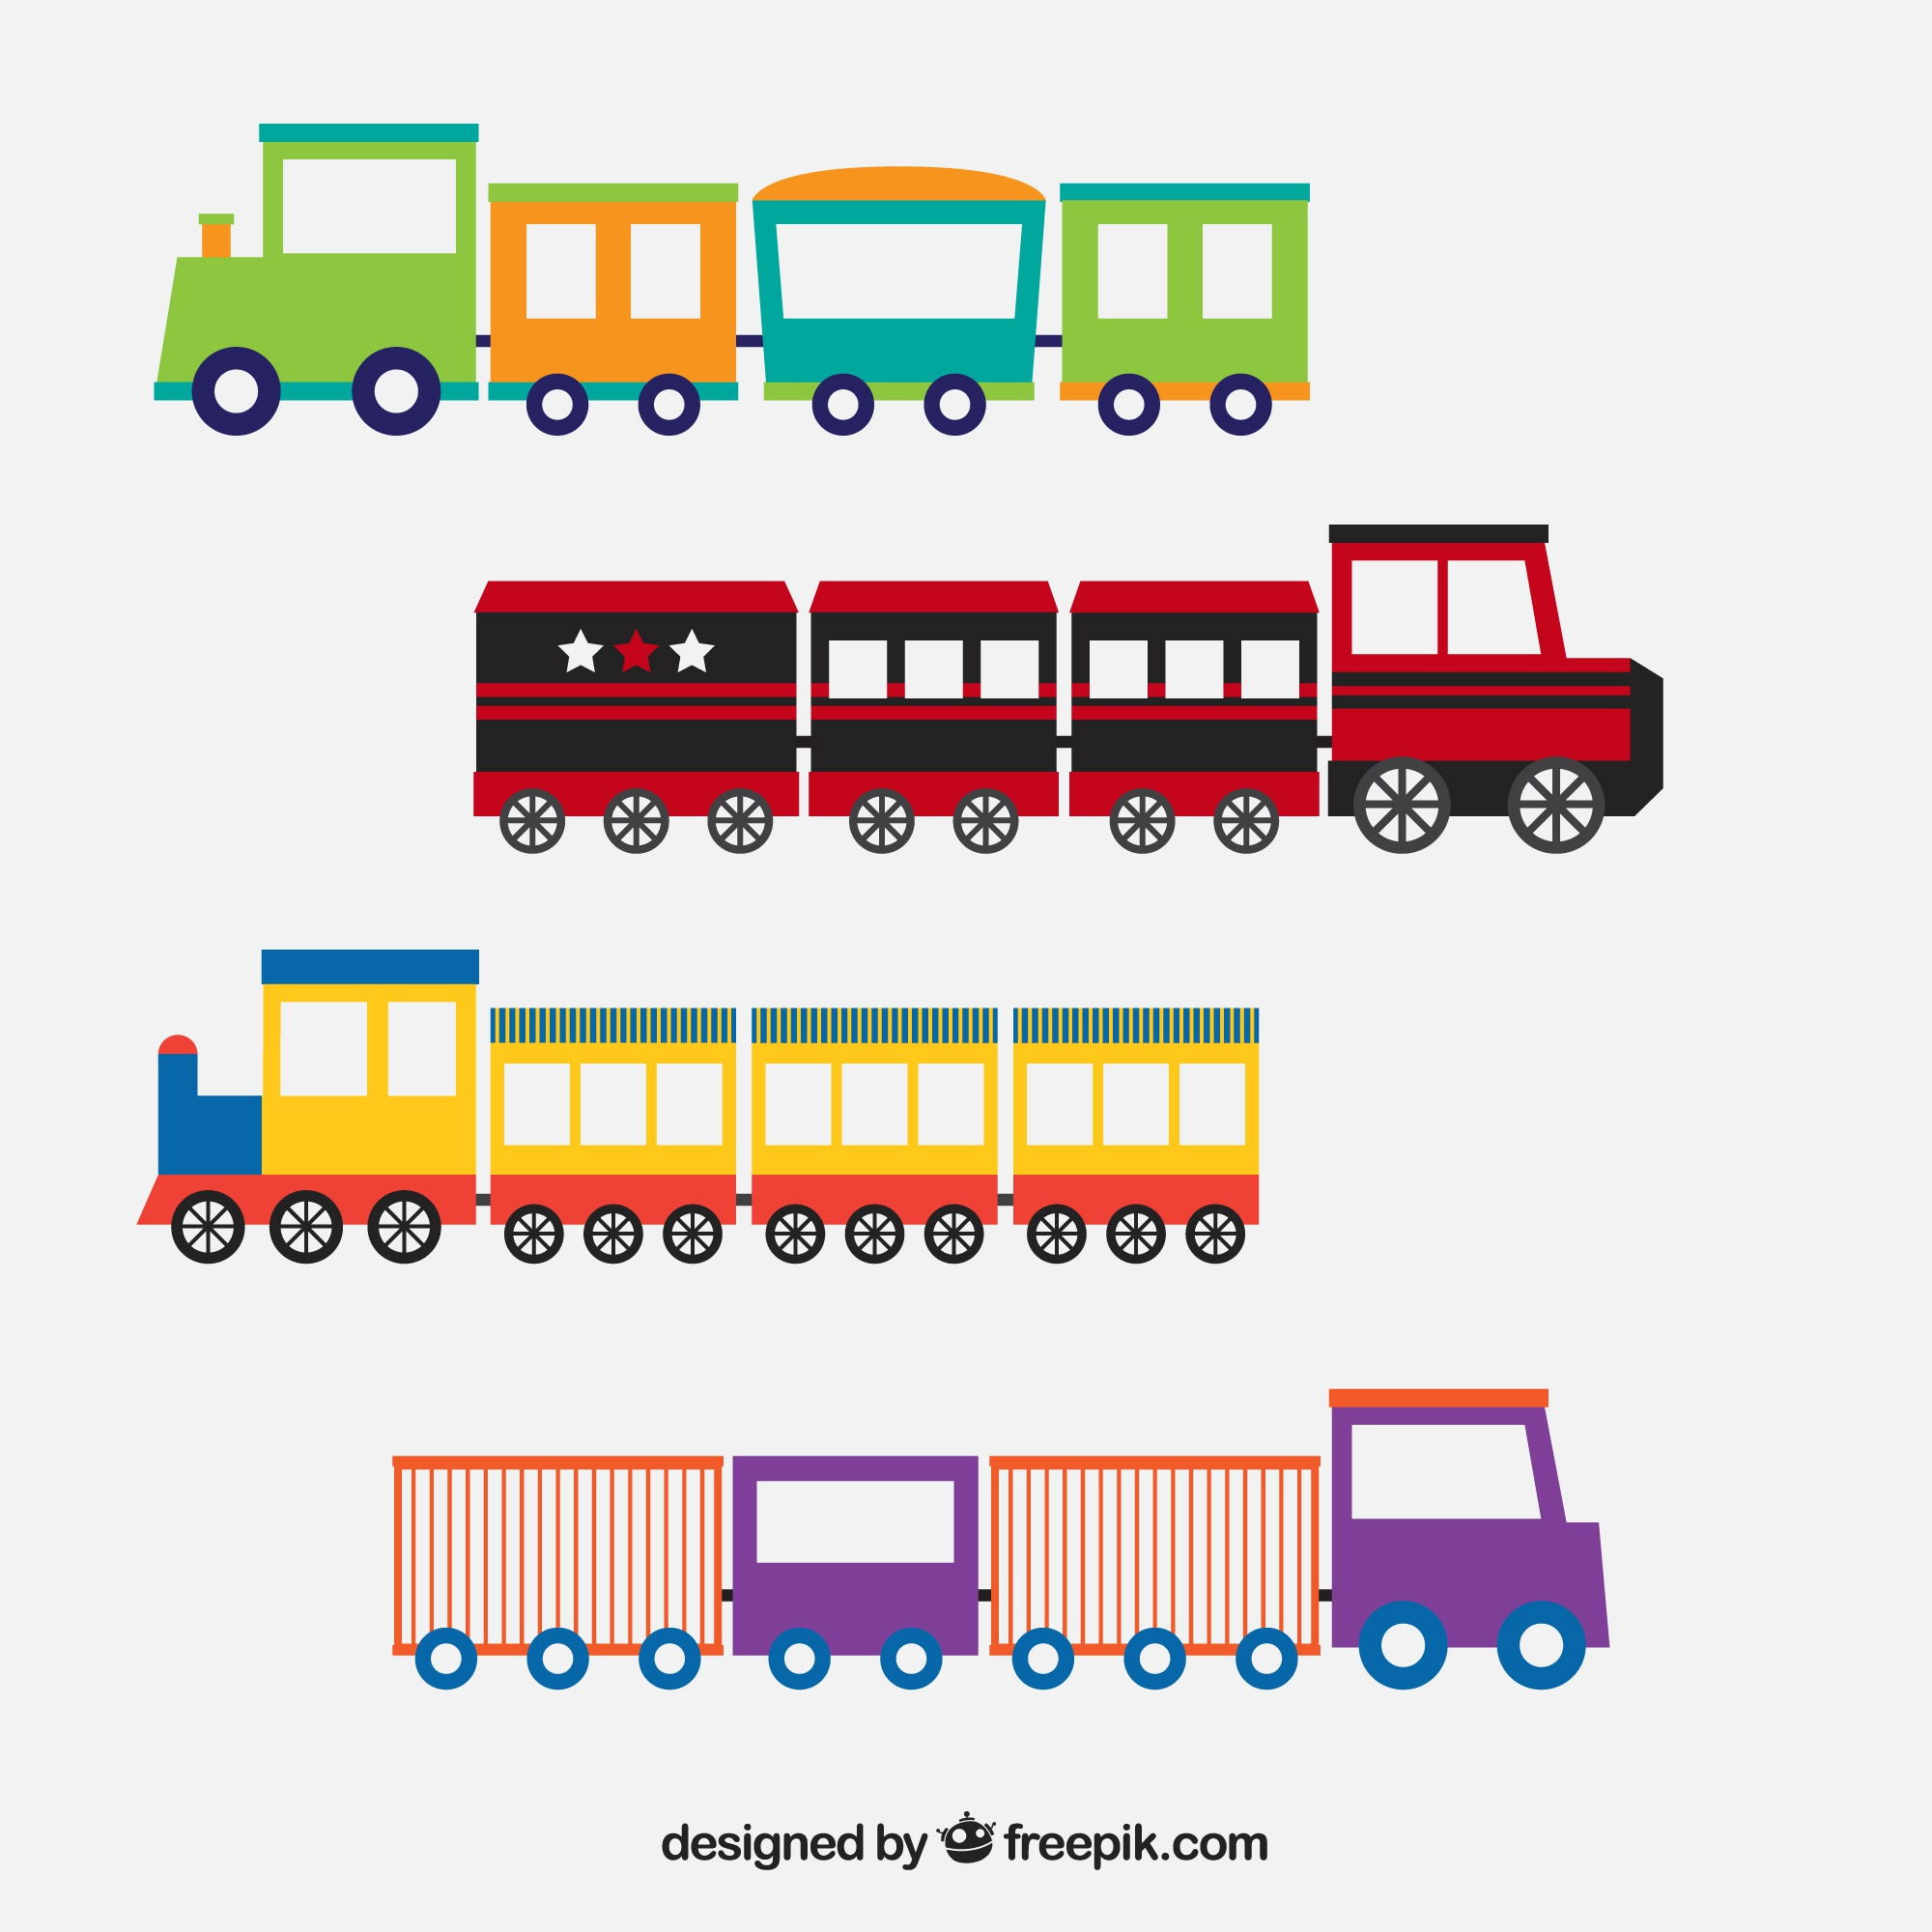 Decorative selection of toy trains in flat design